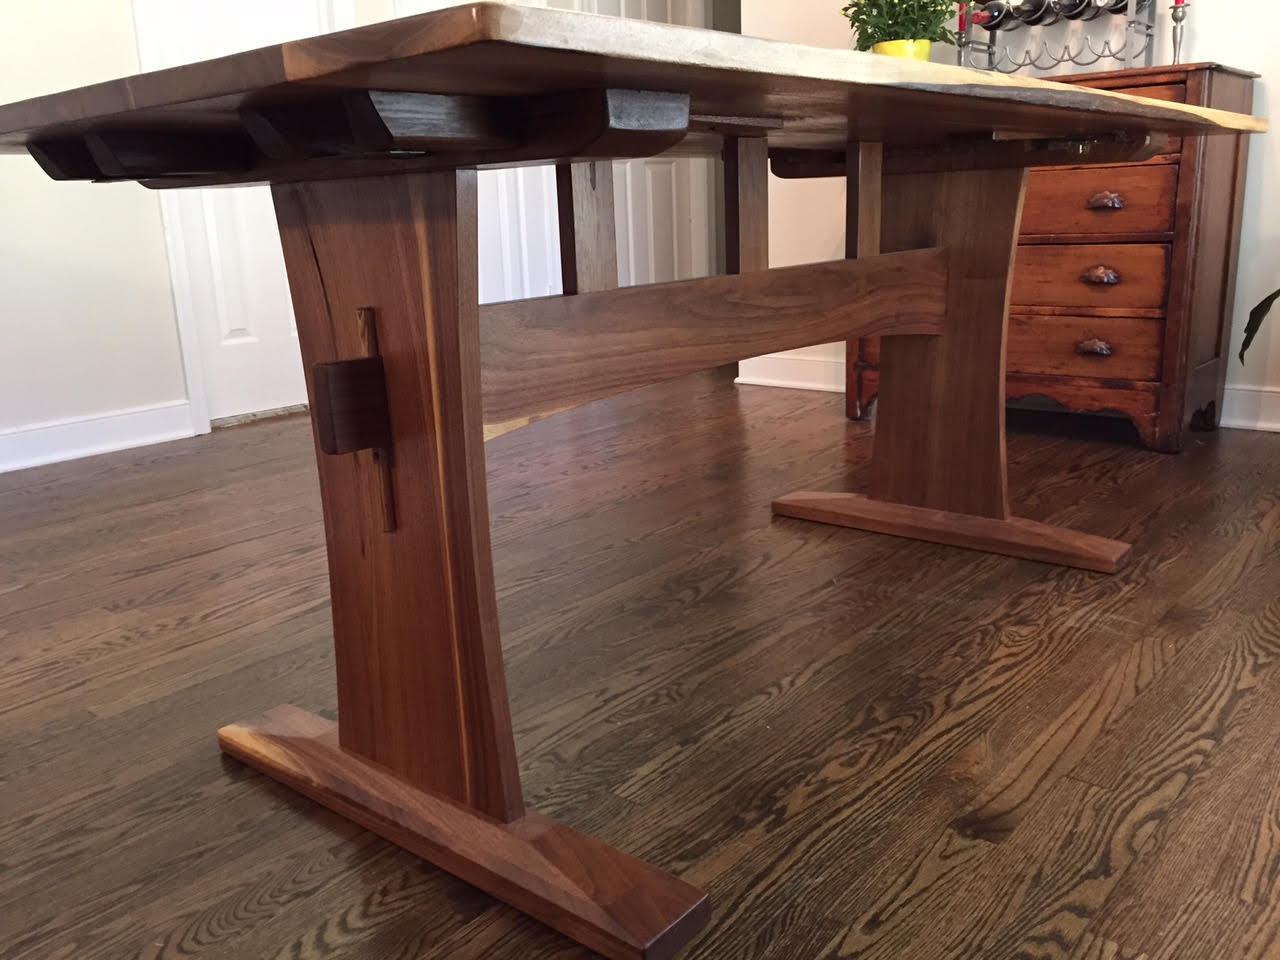 Trestle Tables Reclaimed Wood FurnitureReclaimed